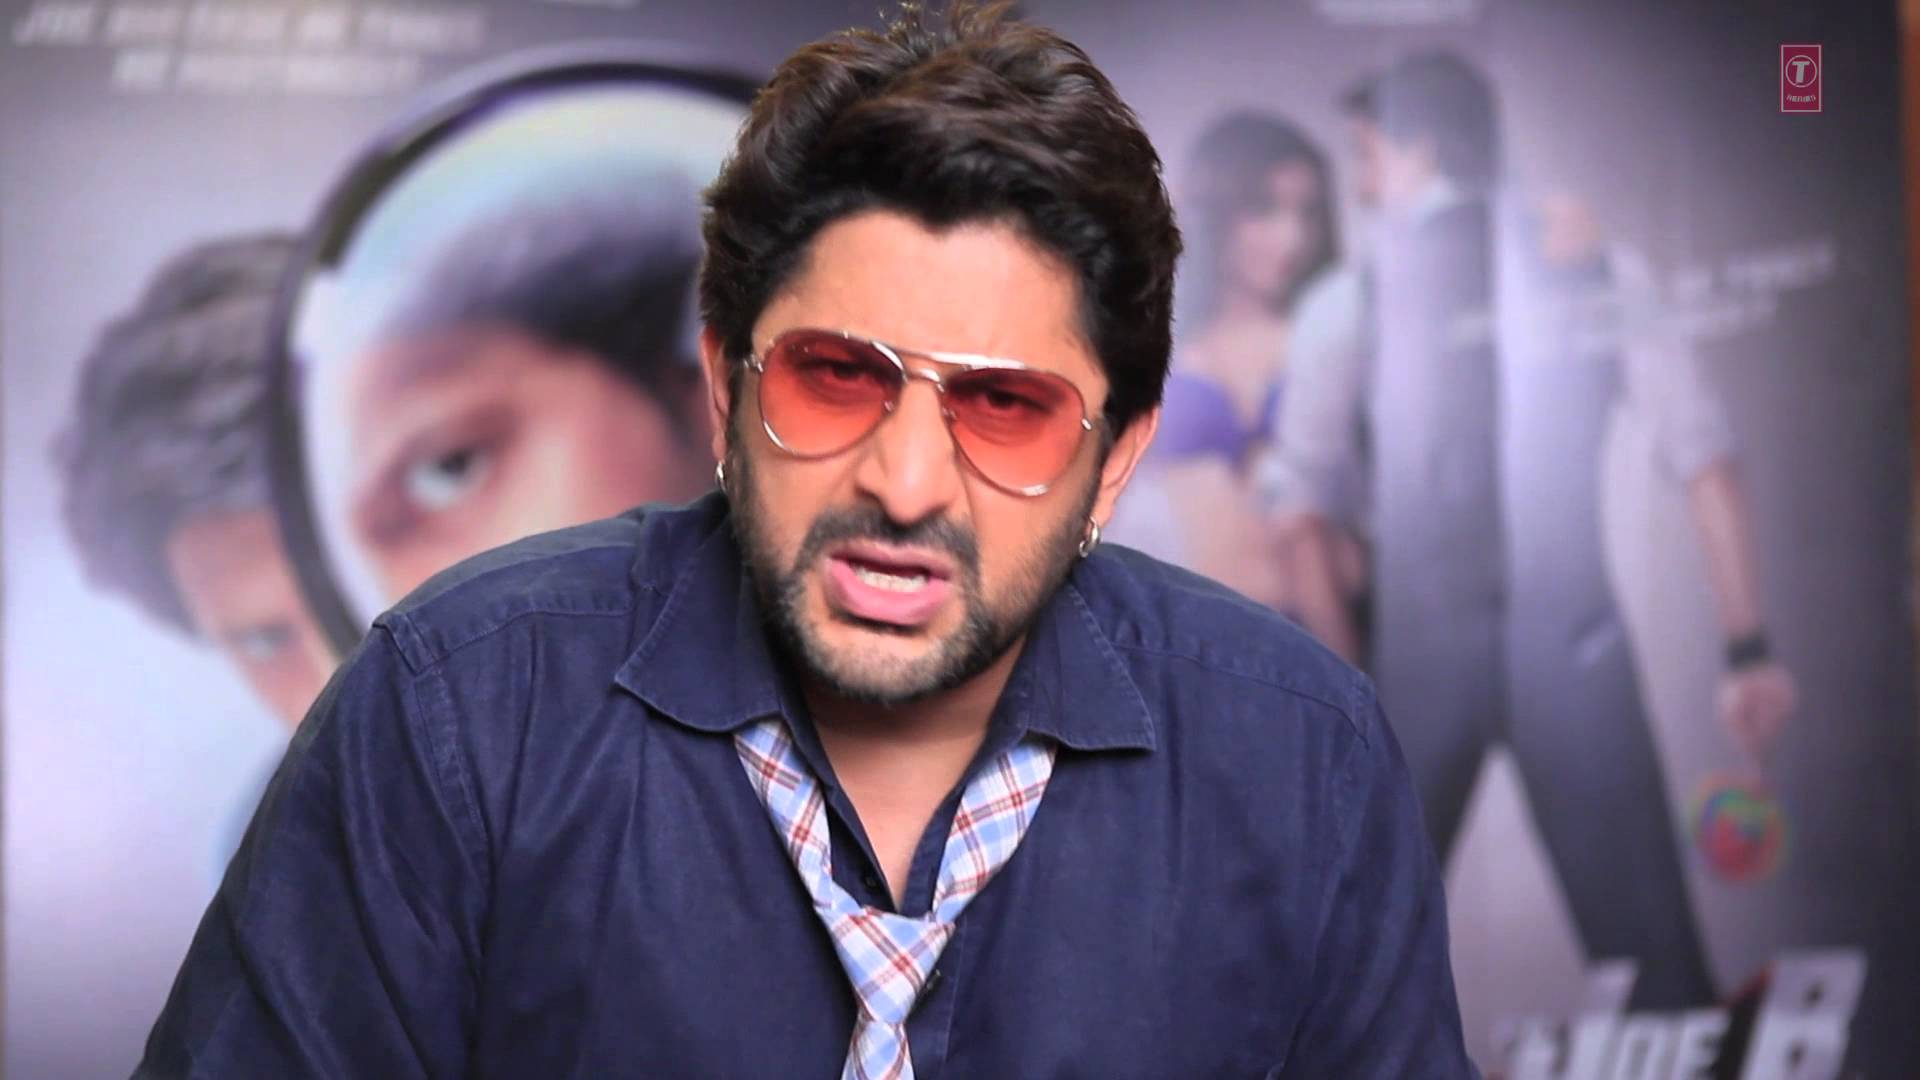 Amazing Arshad Warsi Pictures & Backgrounds